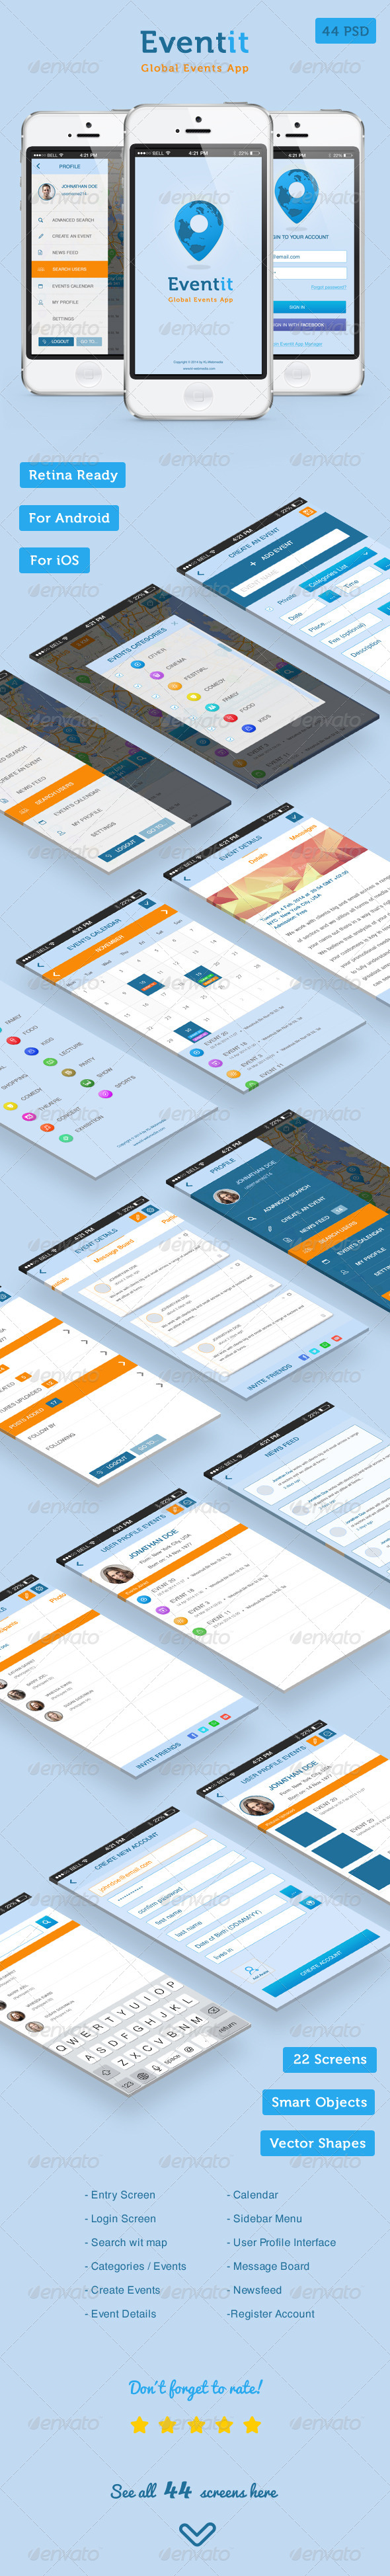 GraphicRiver Eventit Mobile Application UI 7889493